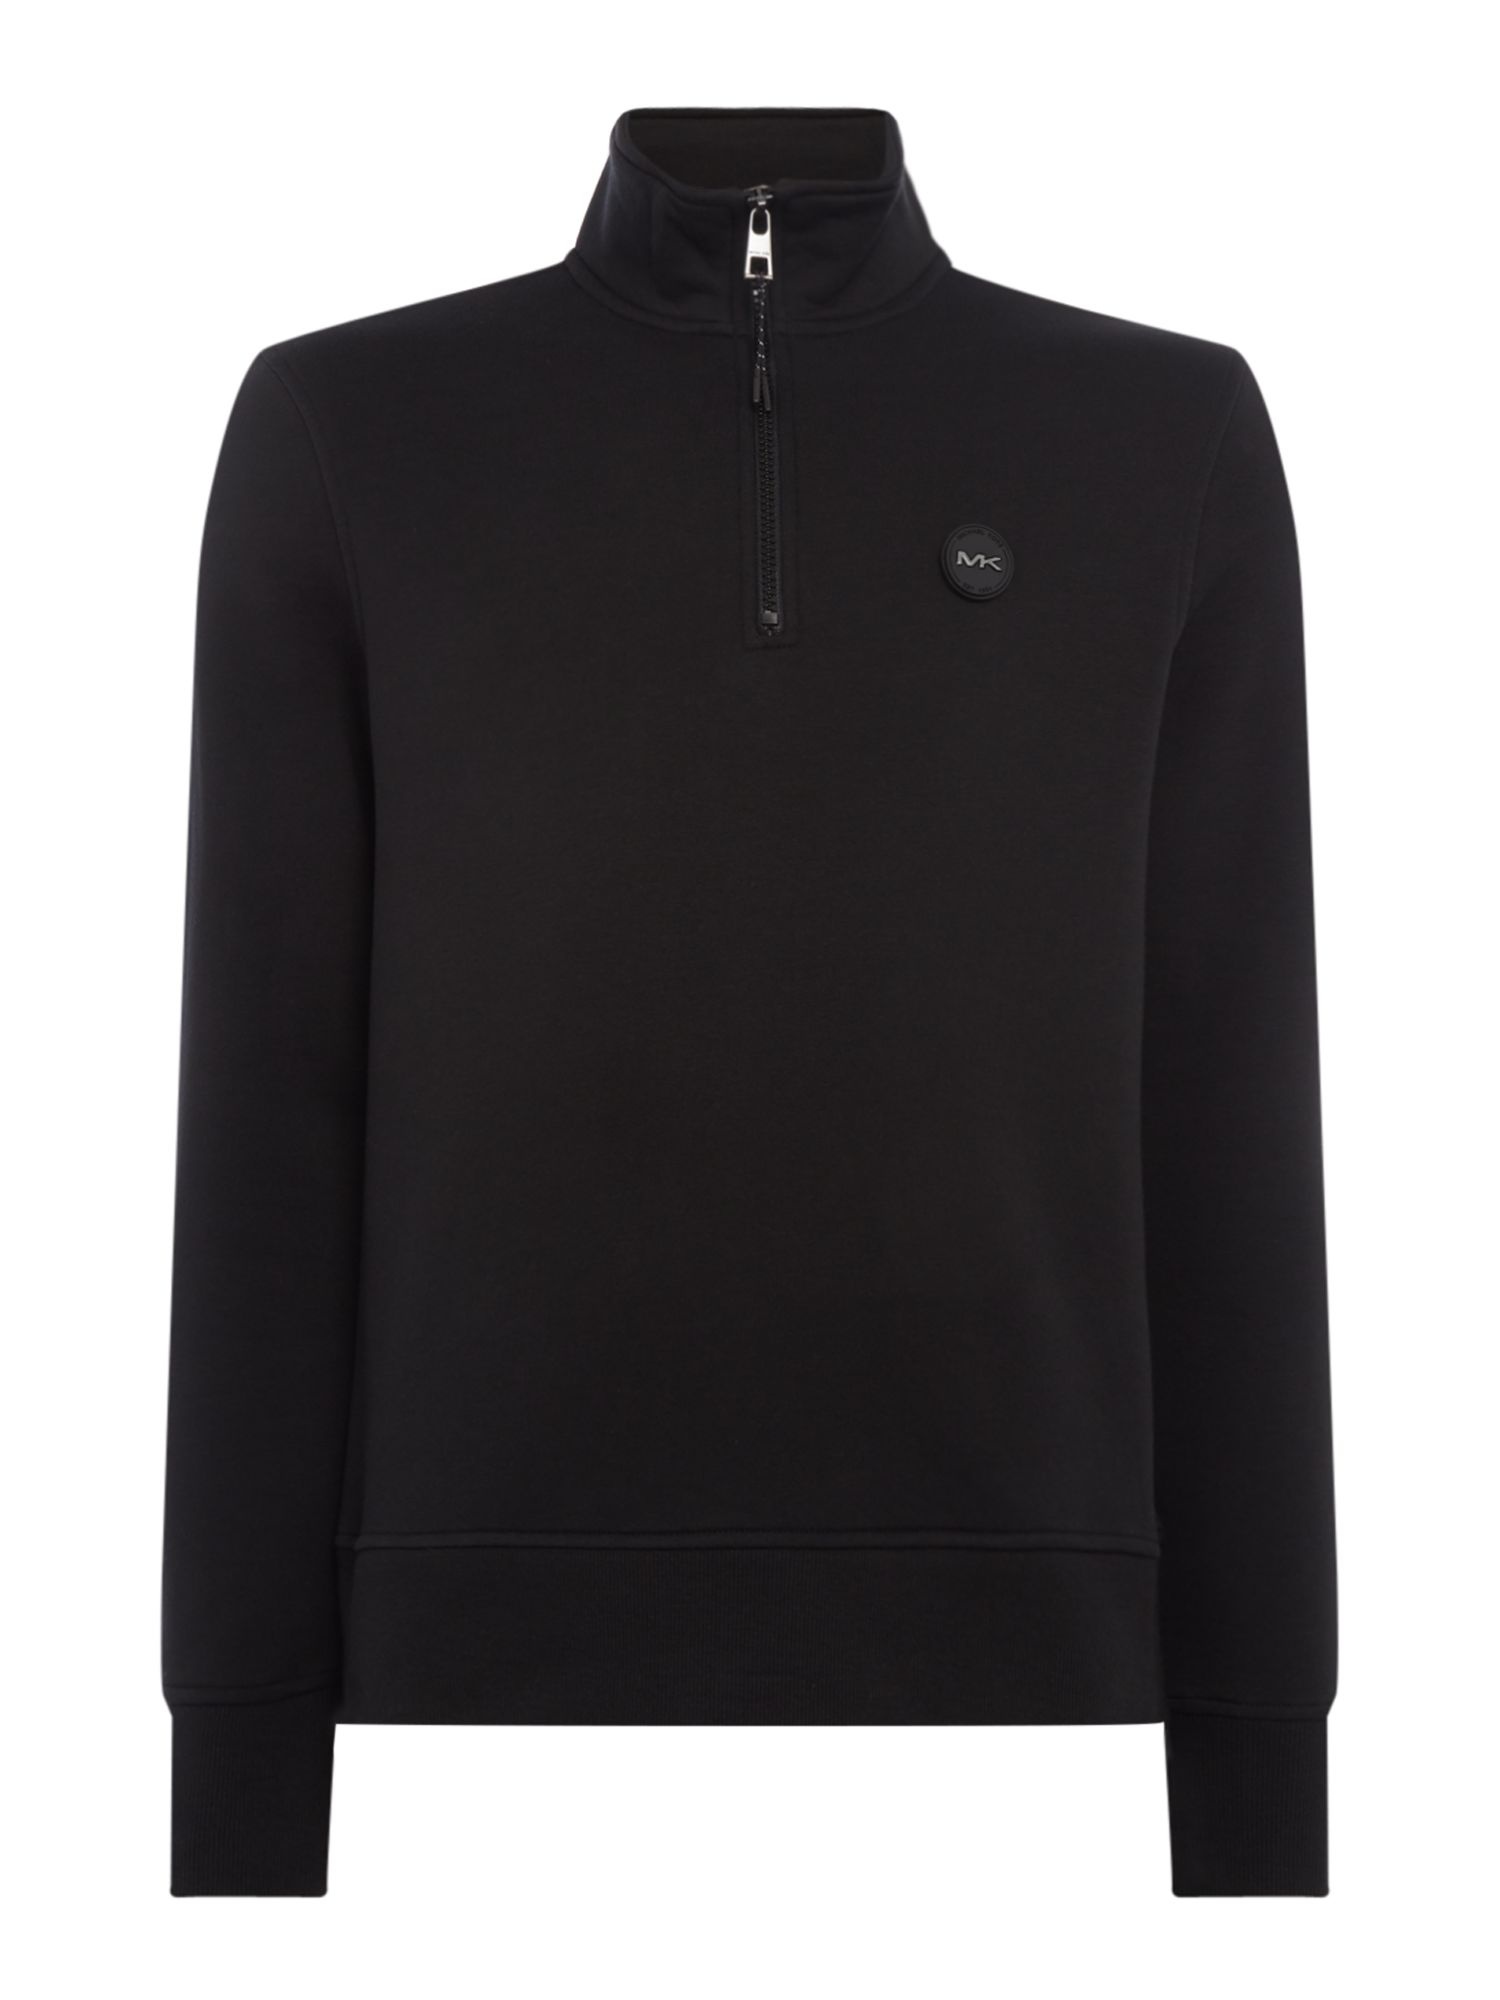 Men's Michael Kors Large arm logo zip-up funnel neck sweatshirt, Black